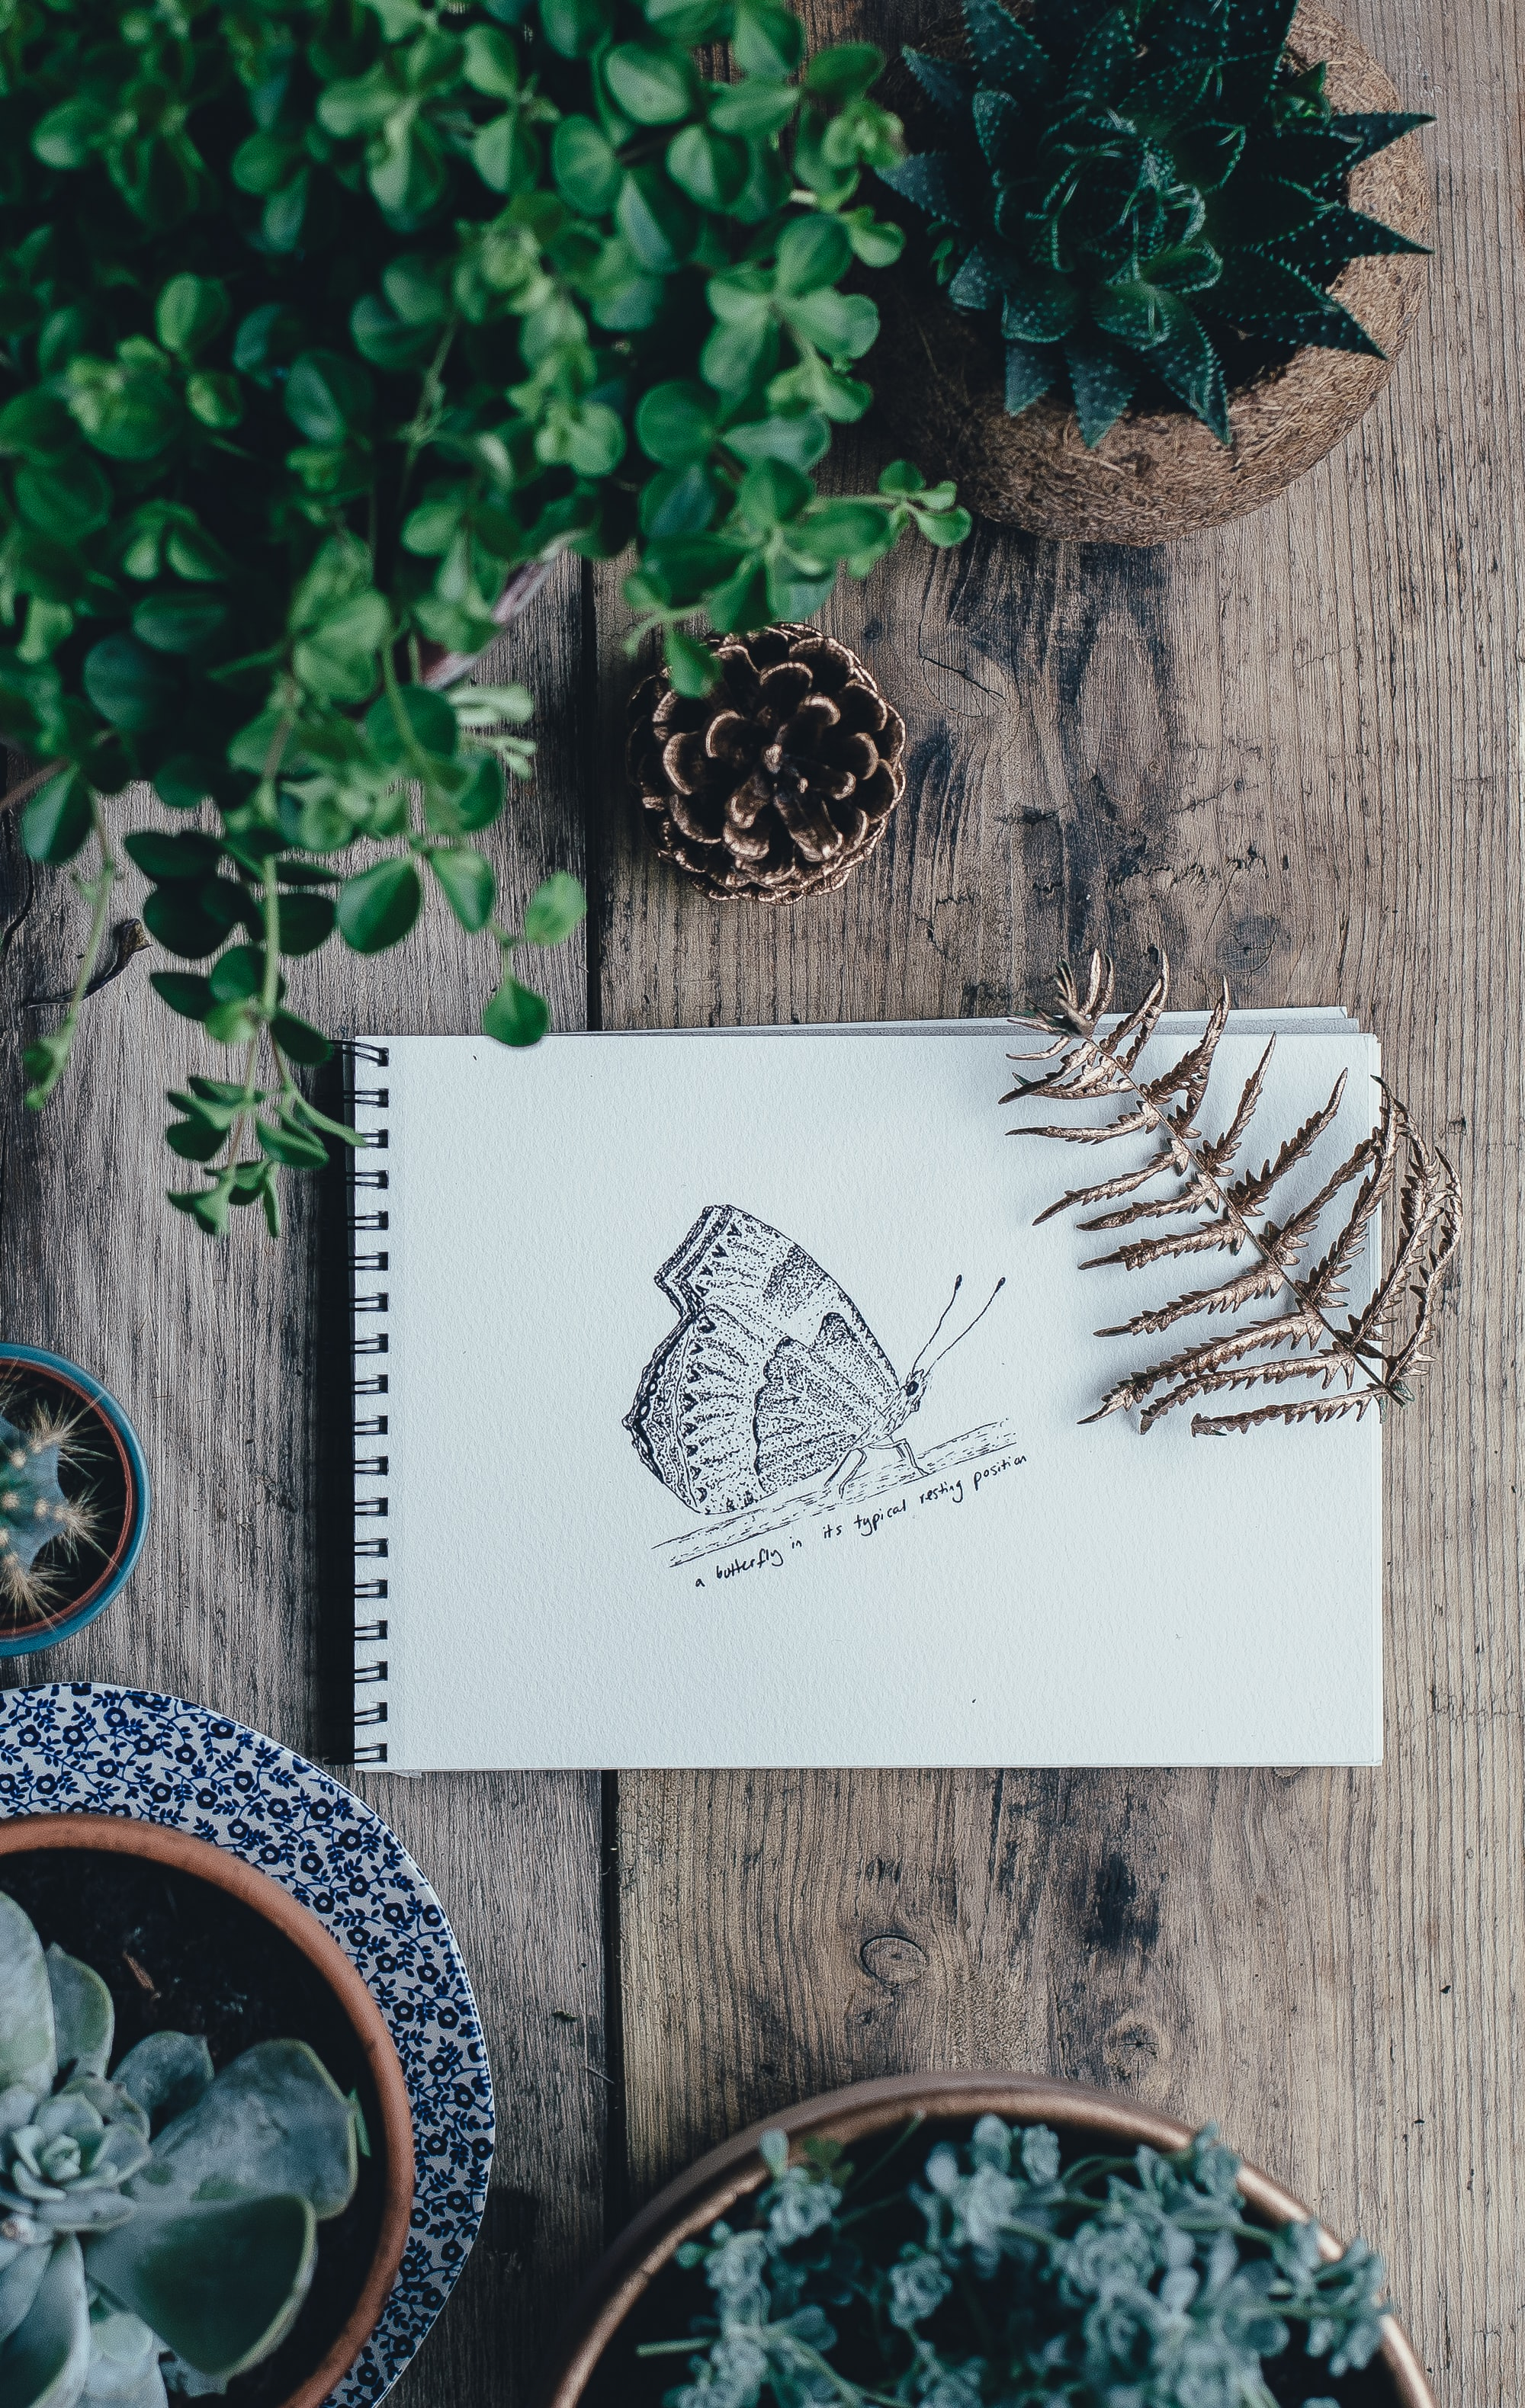 A tabletop with a drawing of a butterfly, plants, and pots